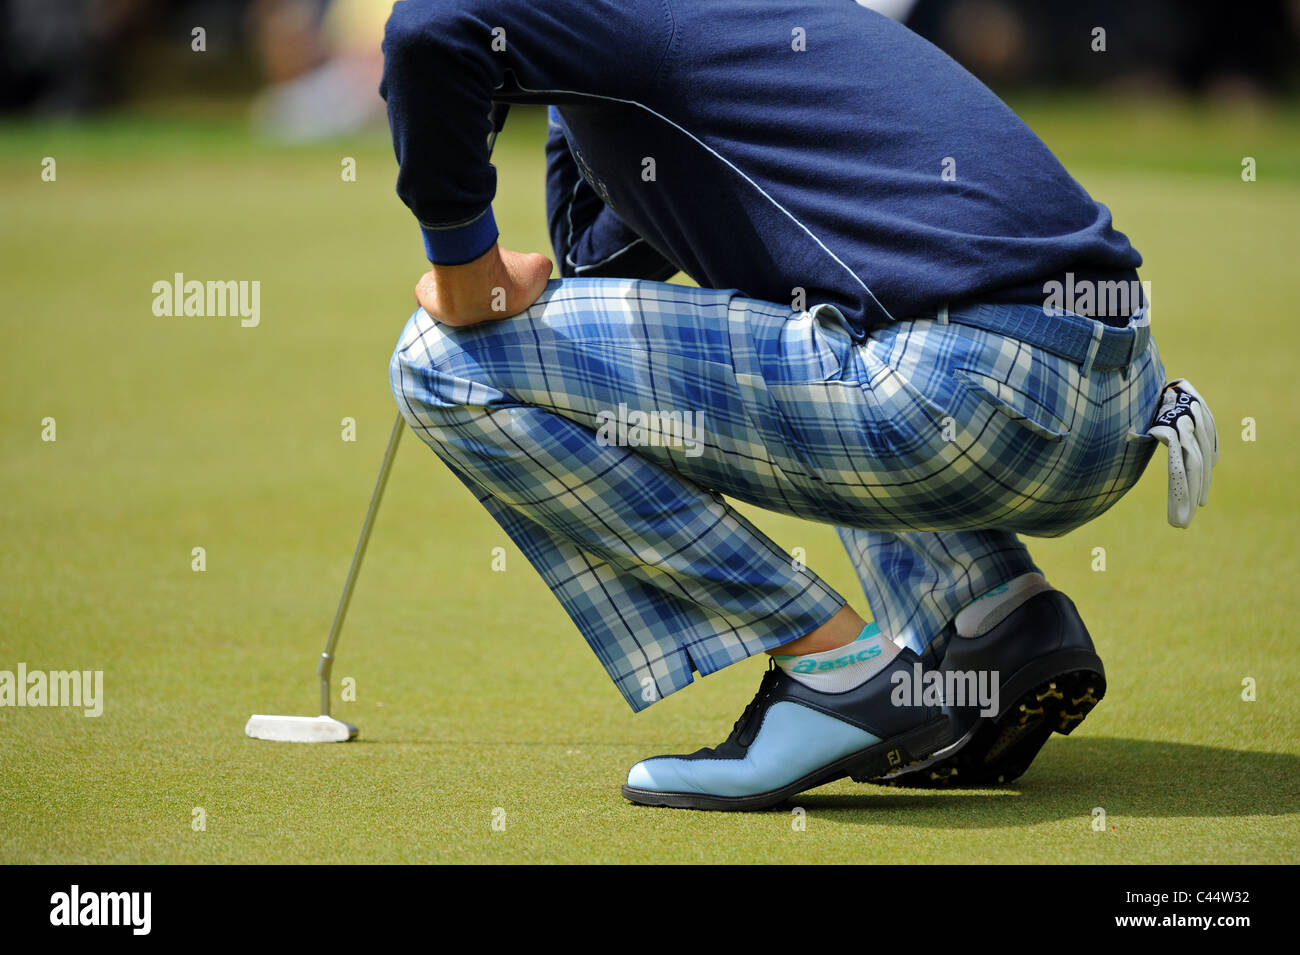 professional golfer in ian poulter wearing checked trousers stock photo  36986854